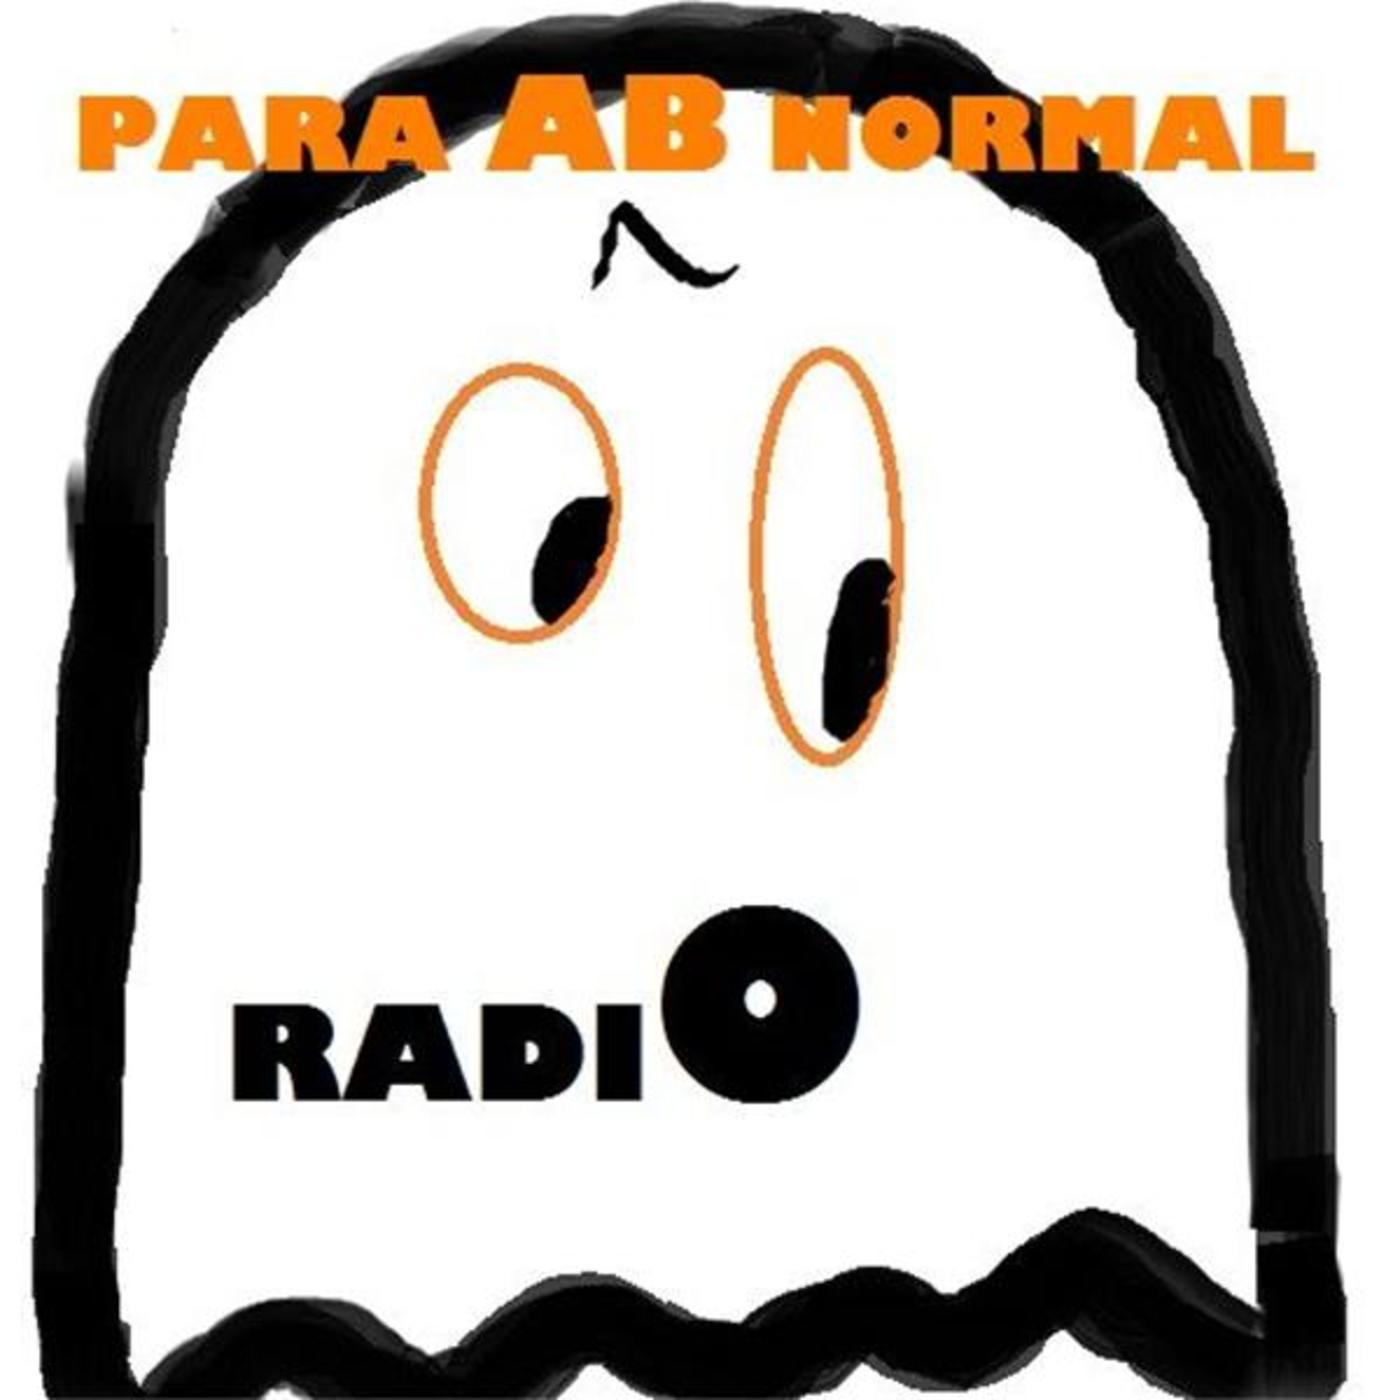 ParaAbnormal Radio